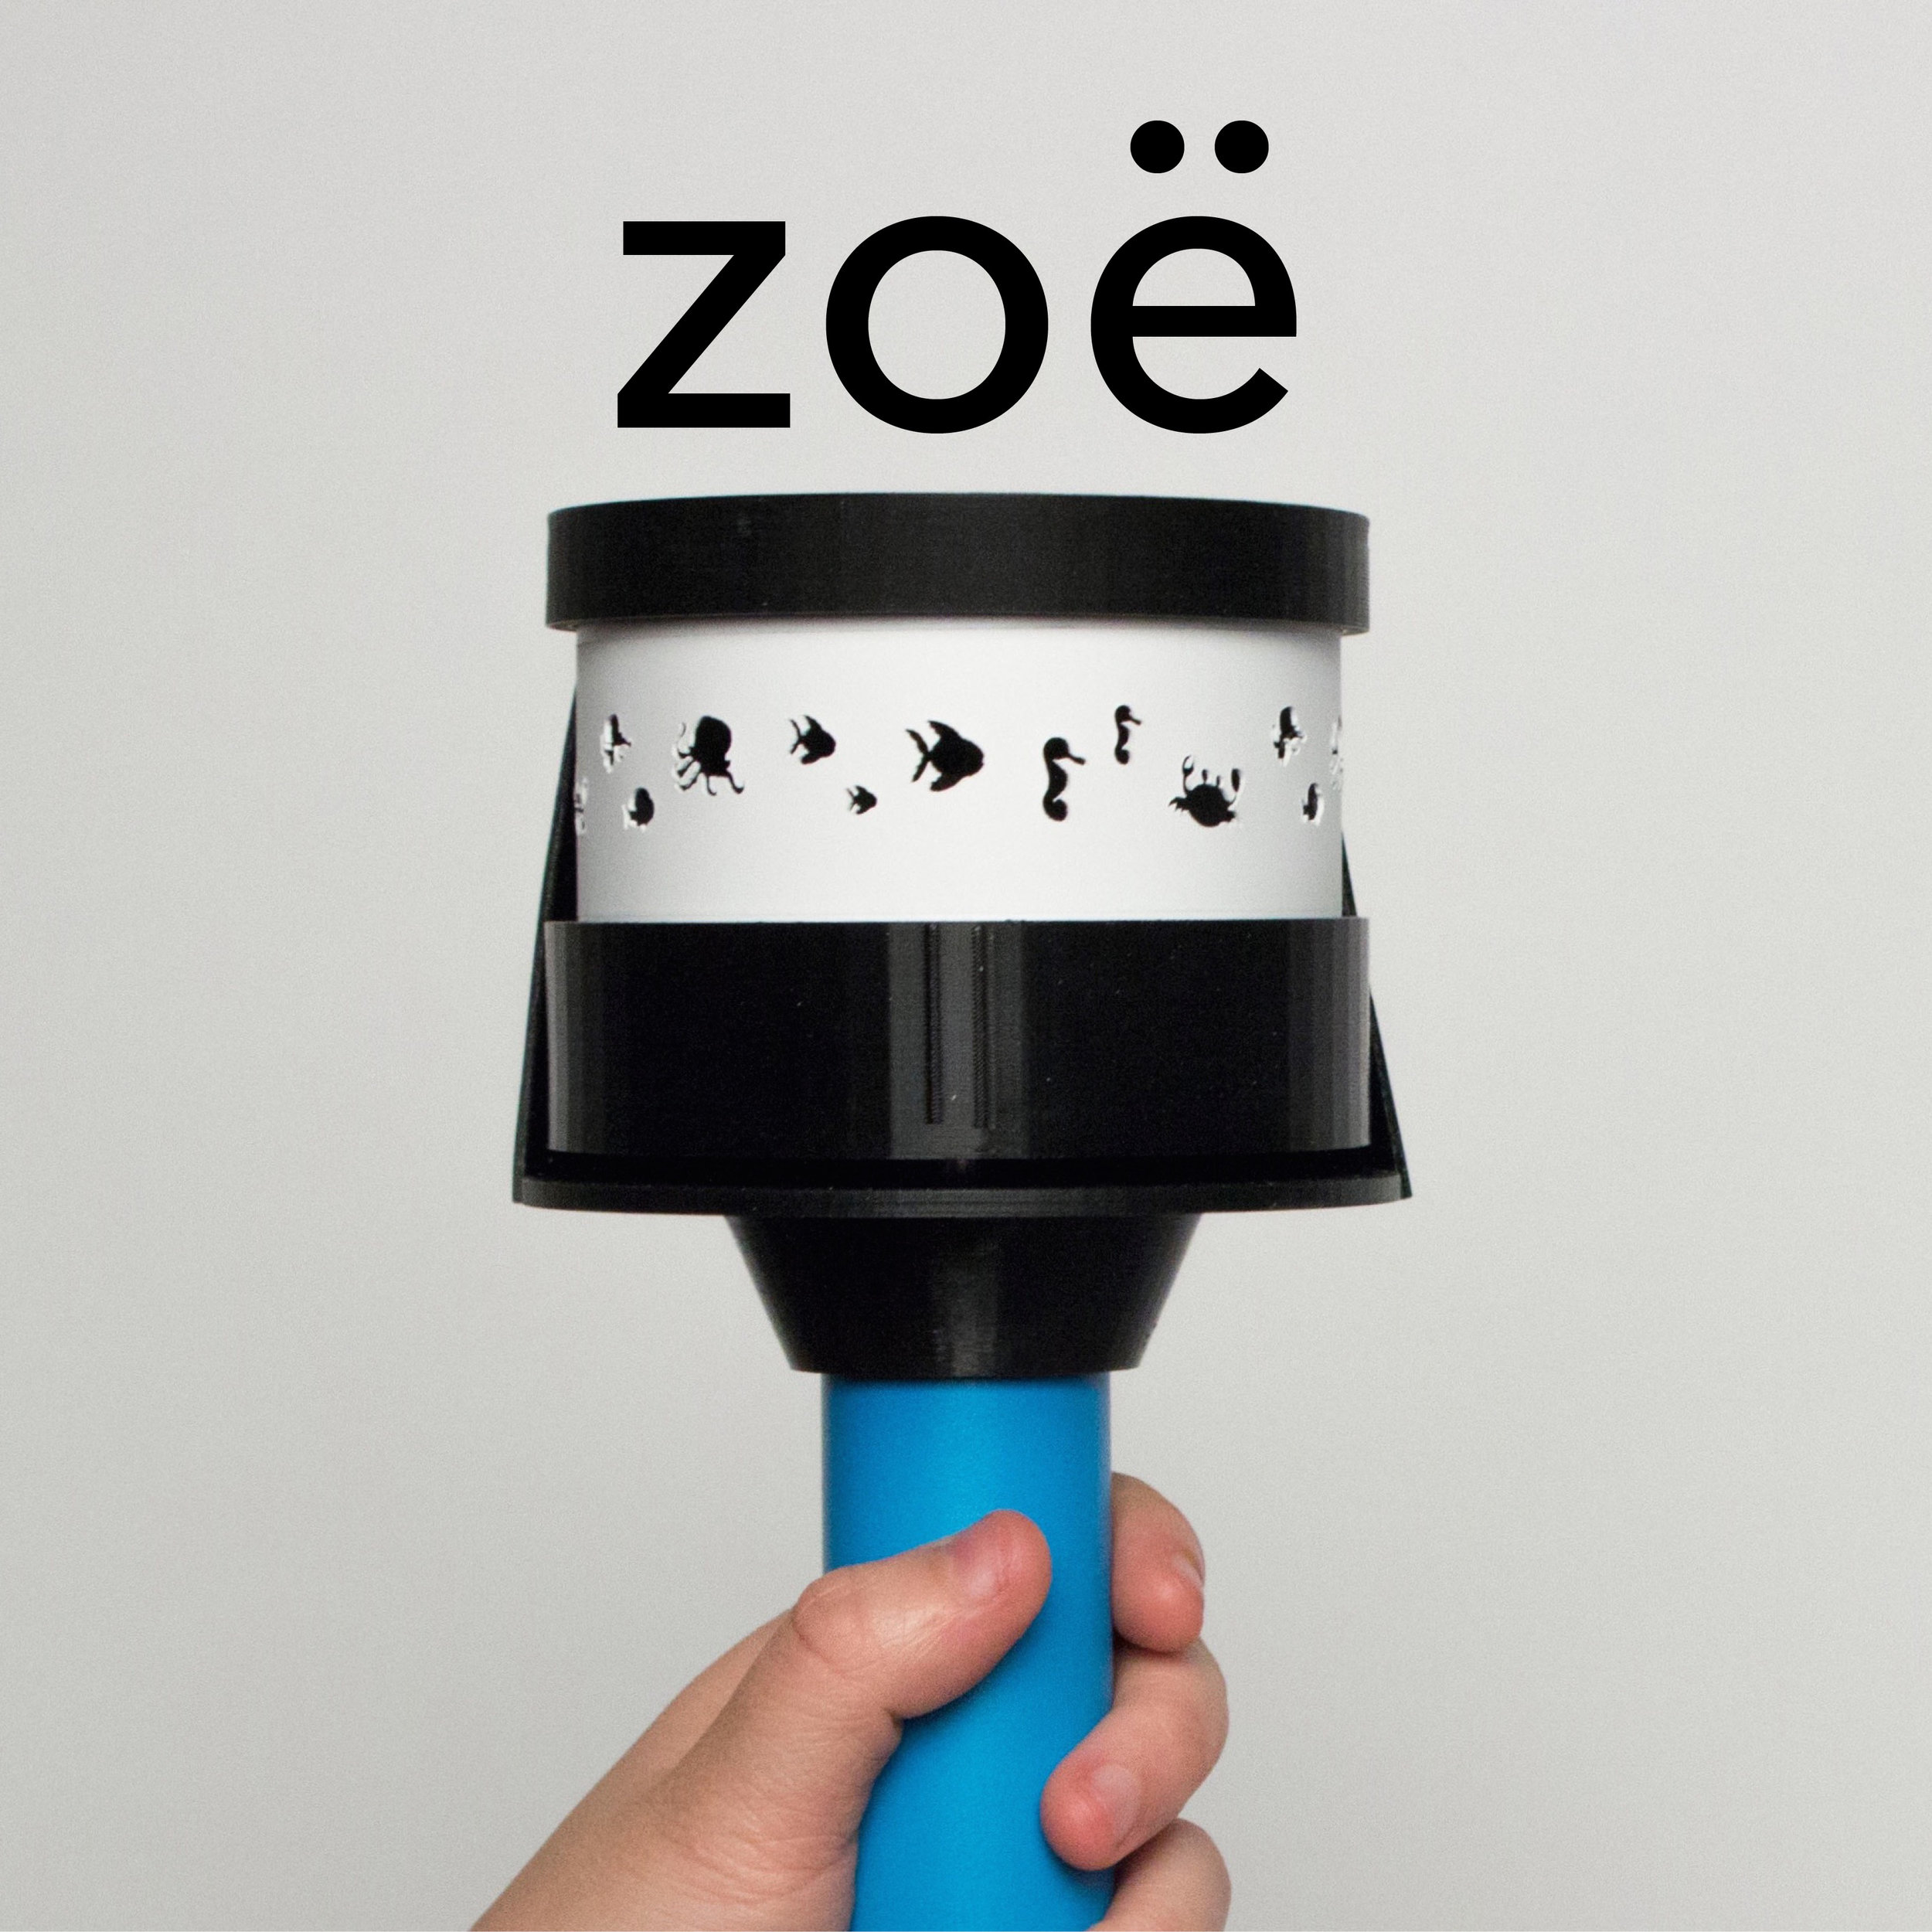 zoe new web header.jpg